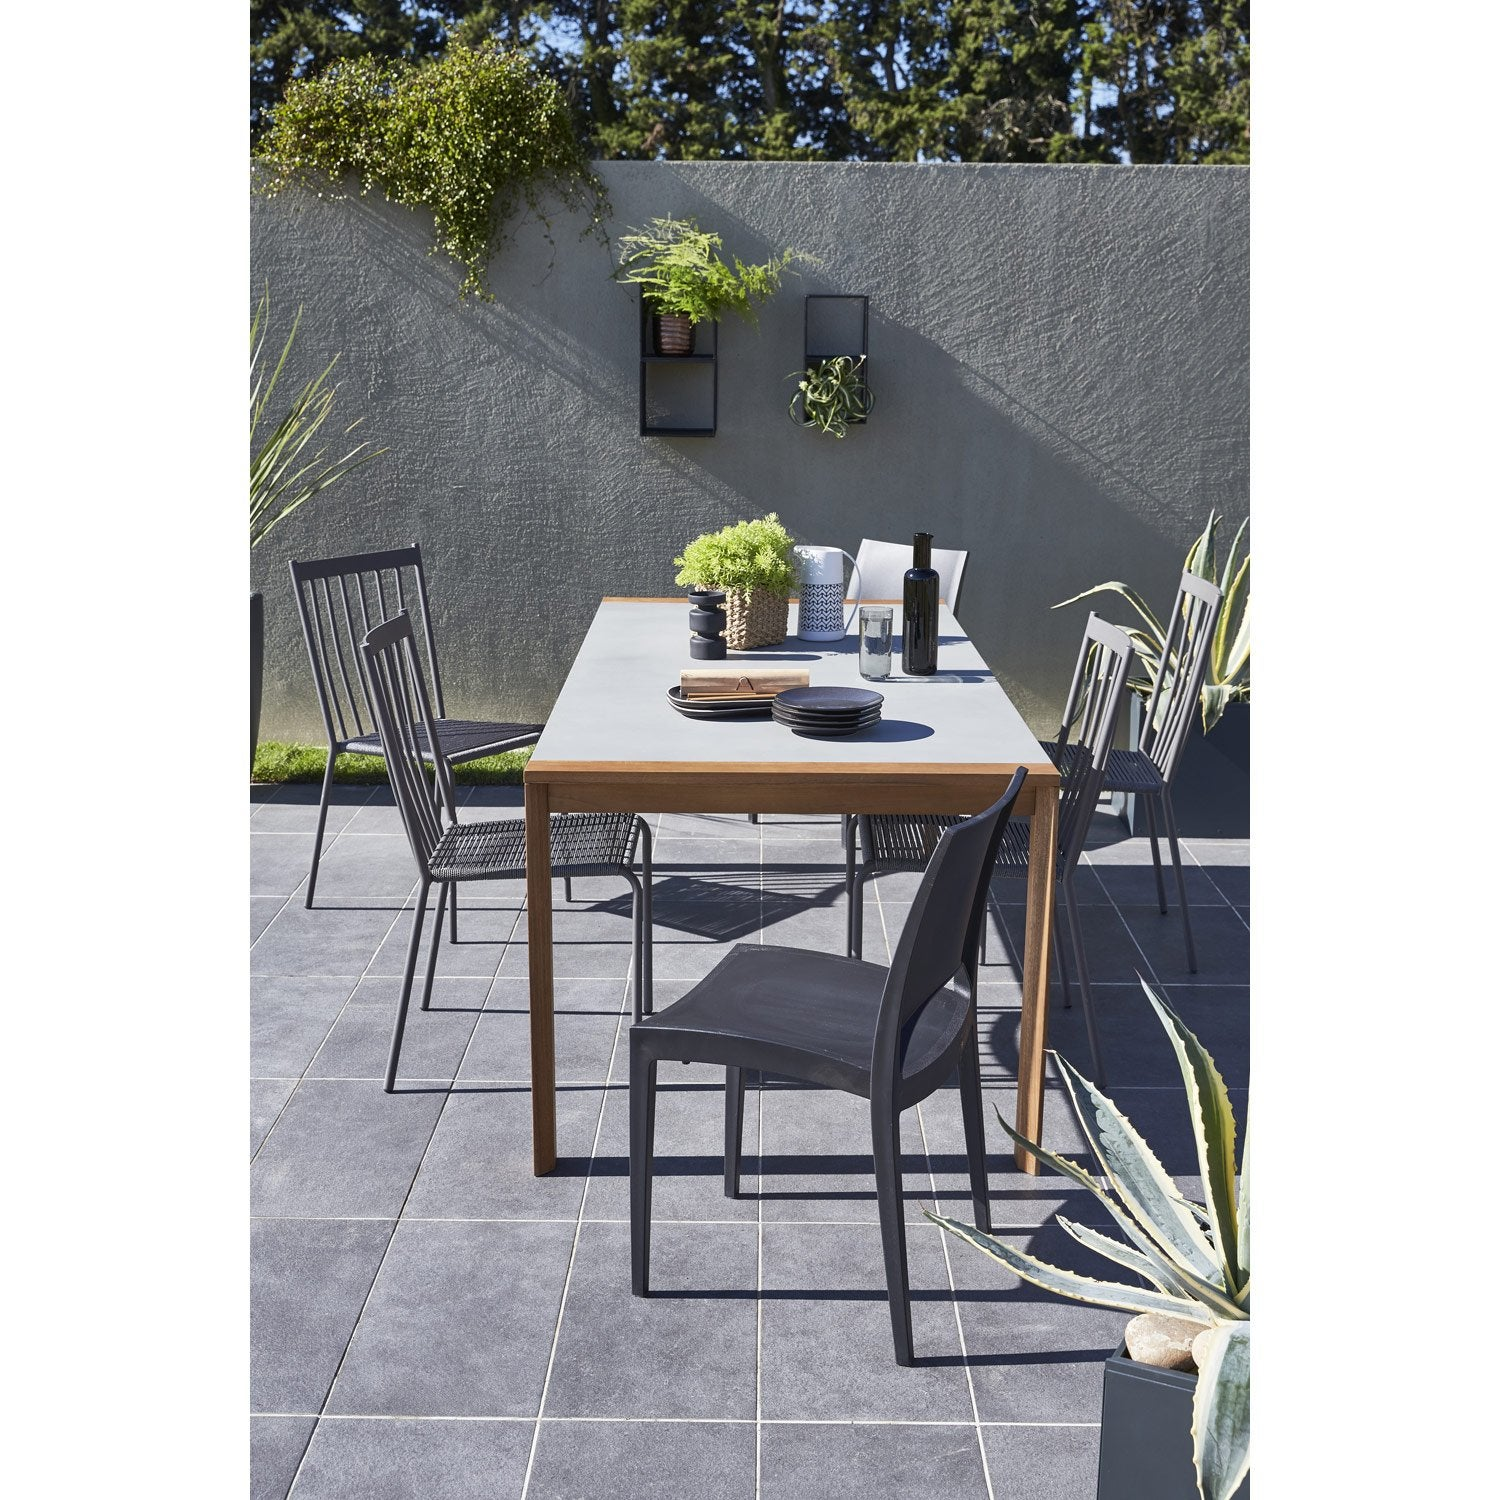 table de jardin berlin rectangulaire gris 6 personnes. Black Bedroom Furniture Sets. Home Design Ideas